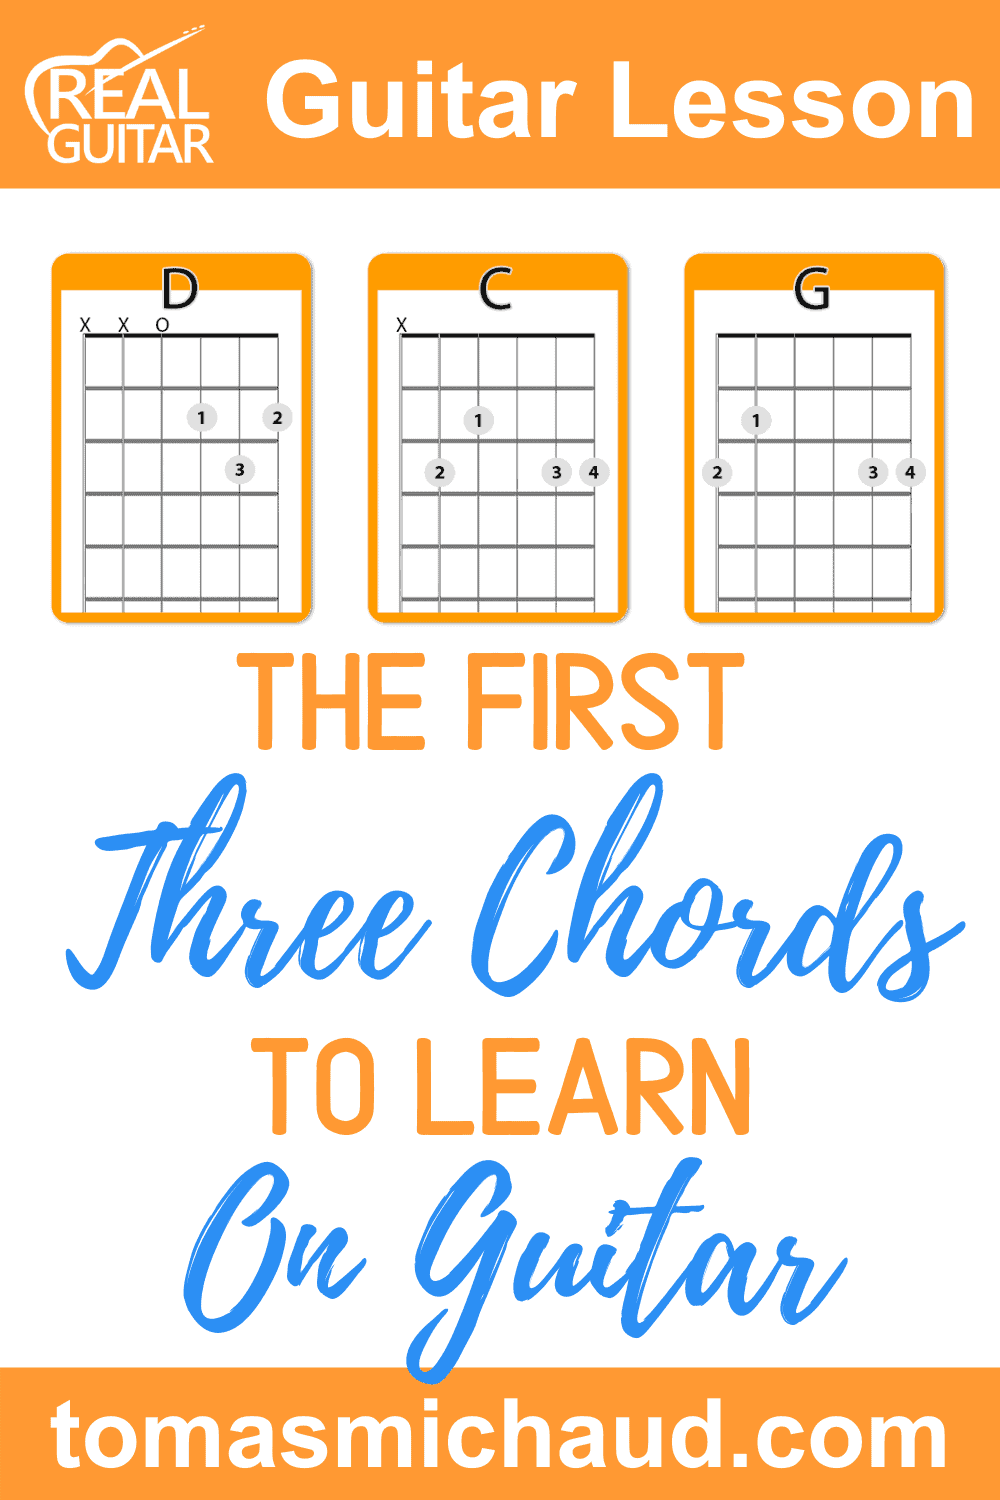 The First Three Chords To Learn On Guitar